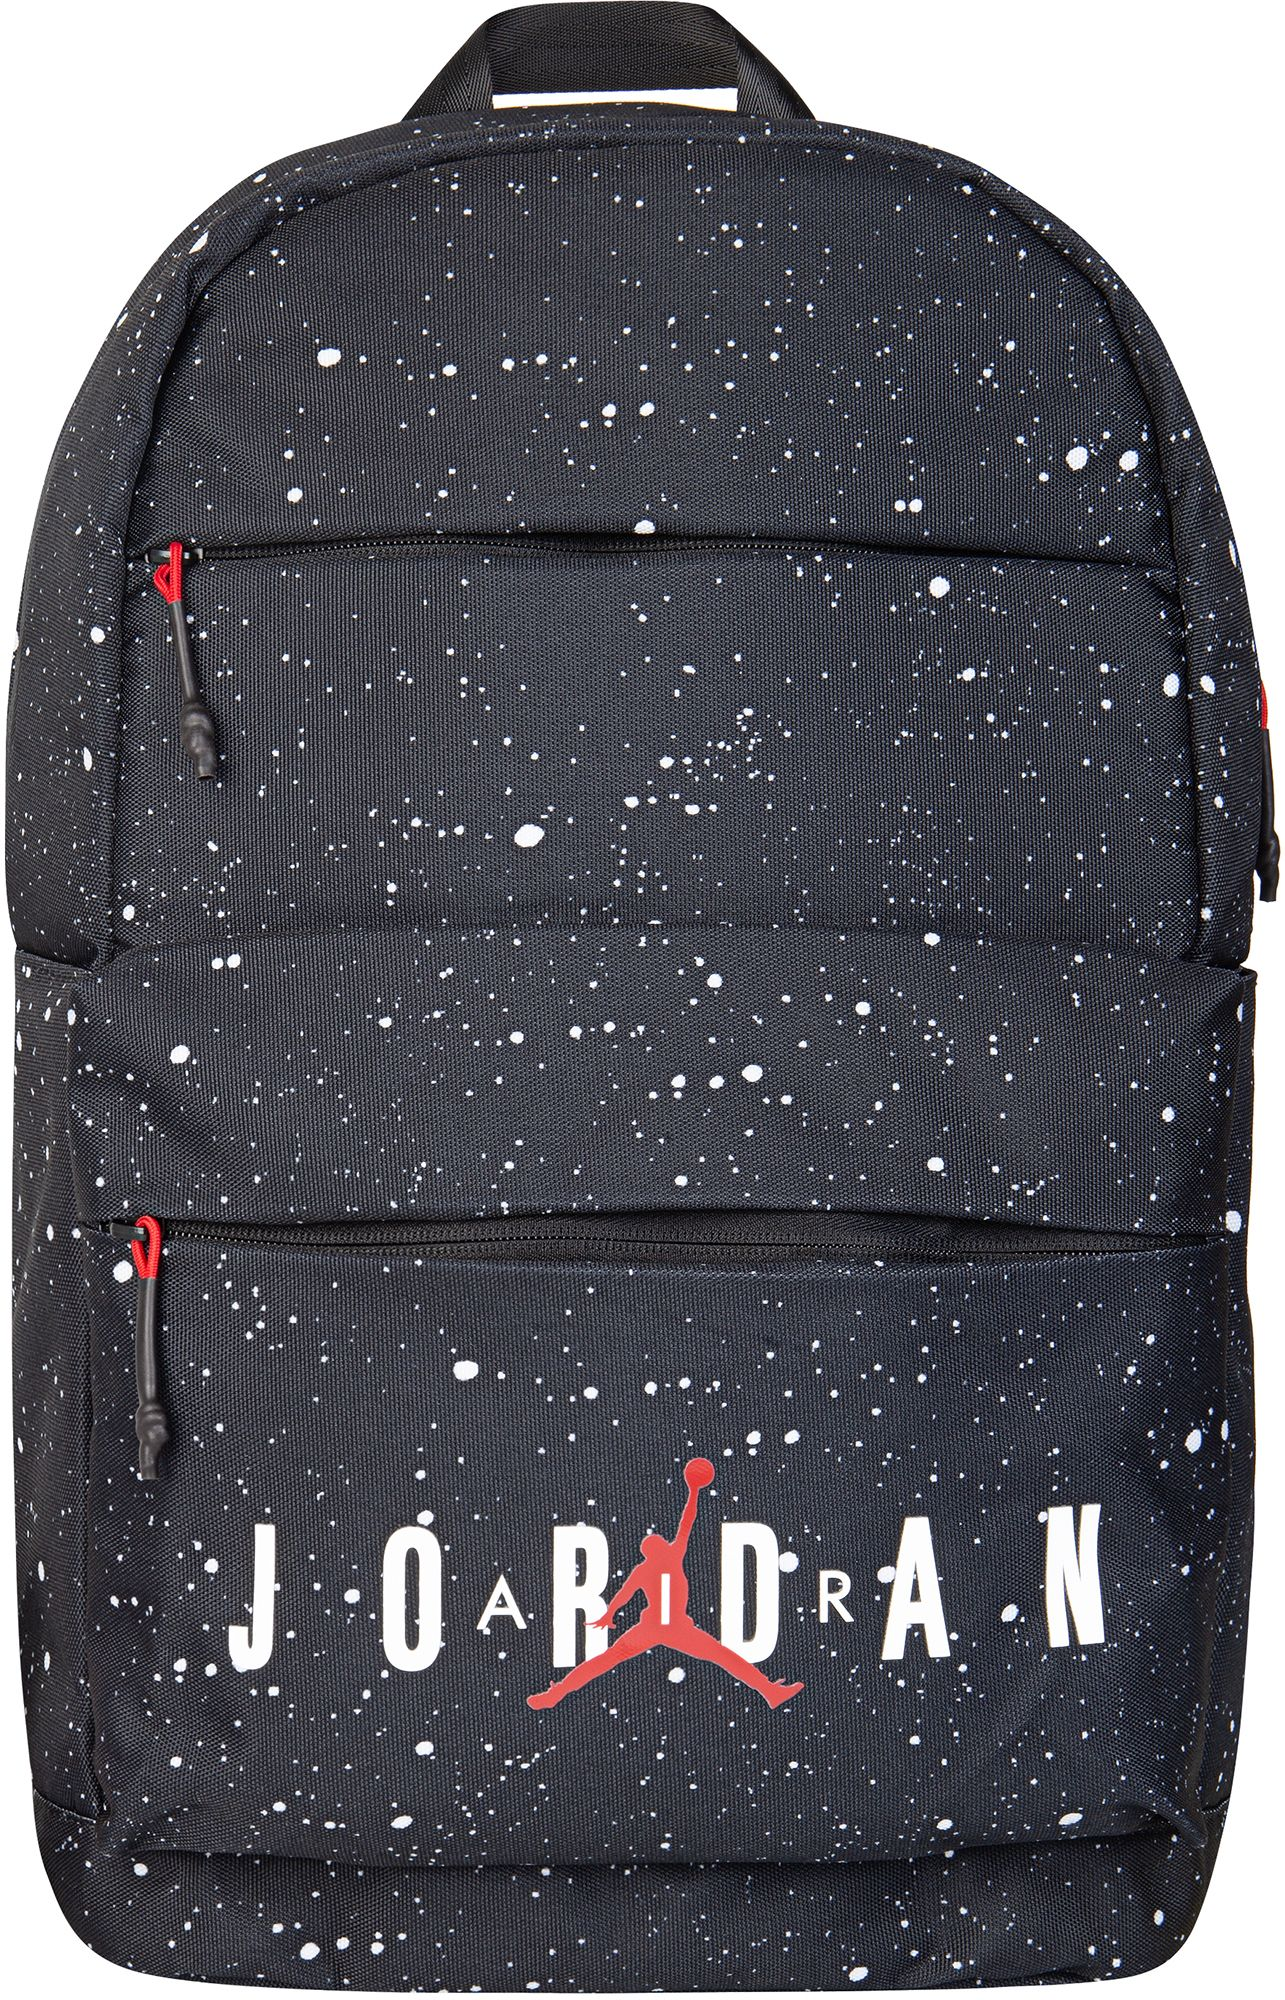 0084a4a30c Jordan Air Splatter Backpack